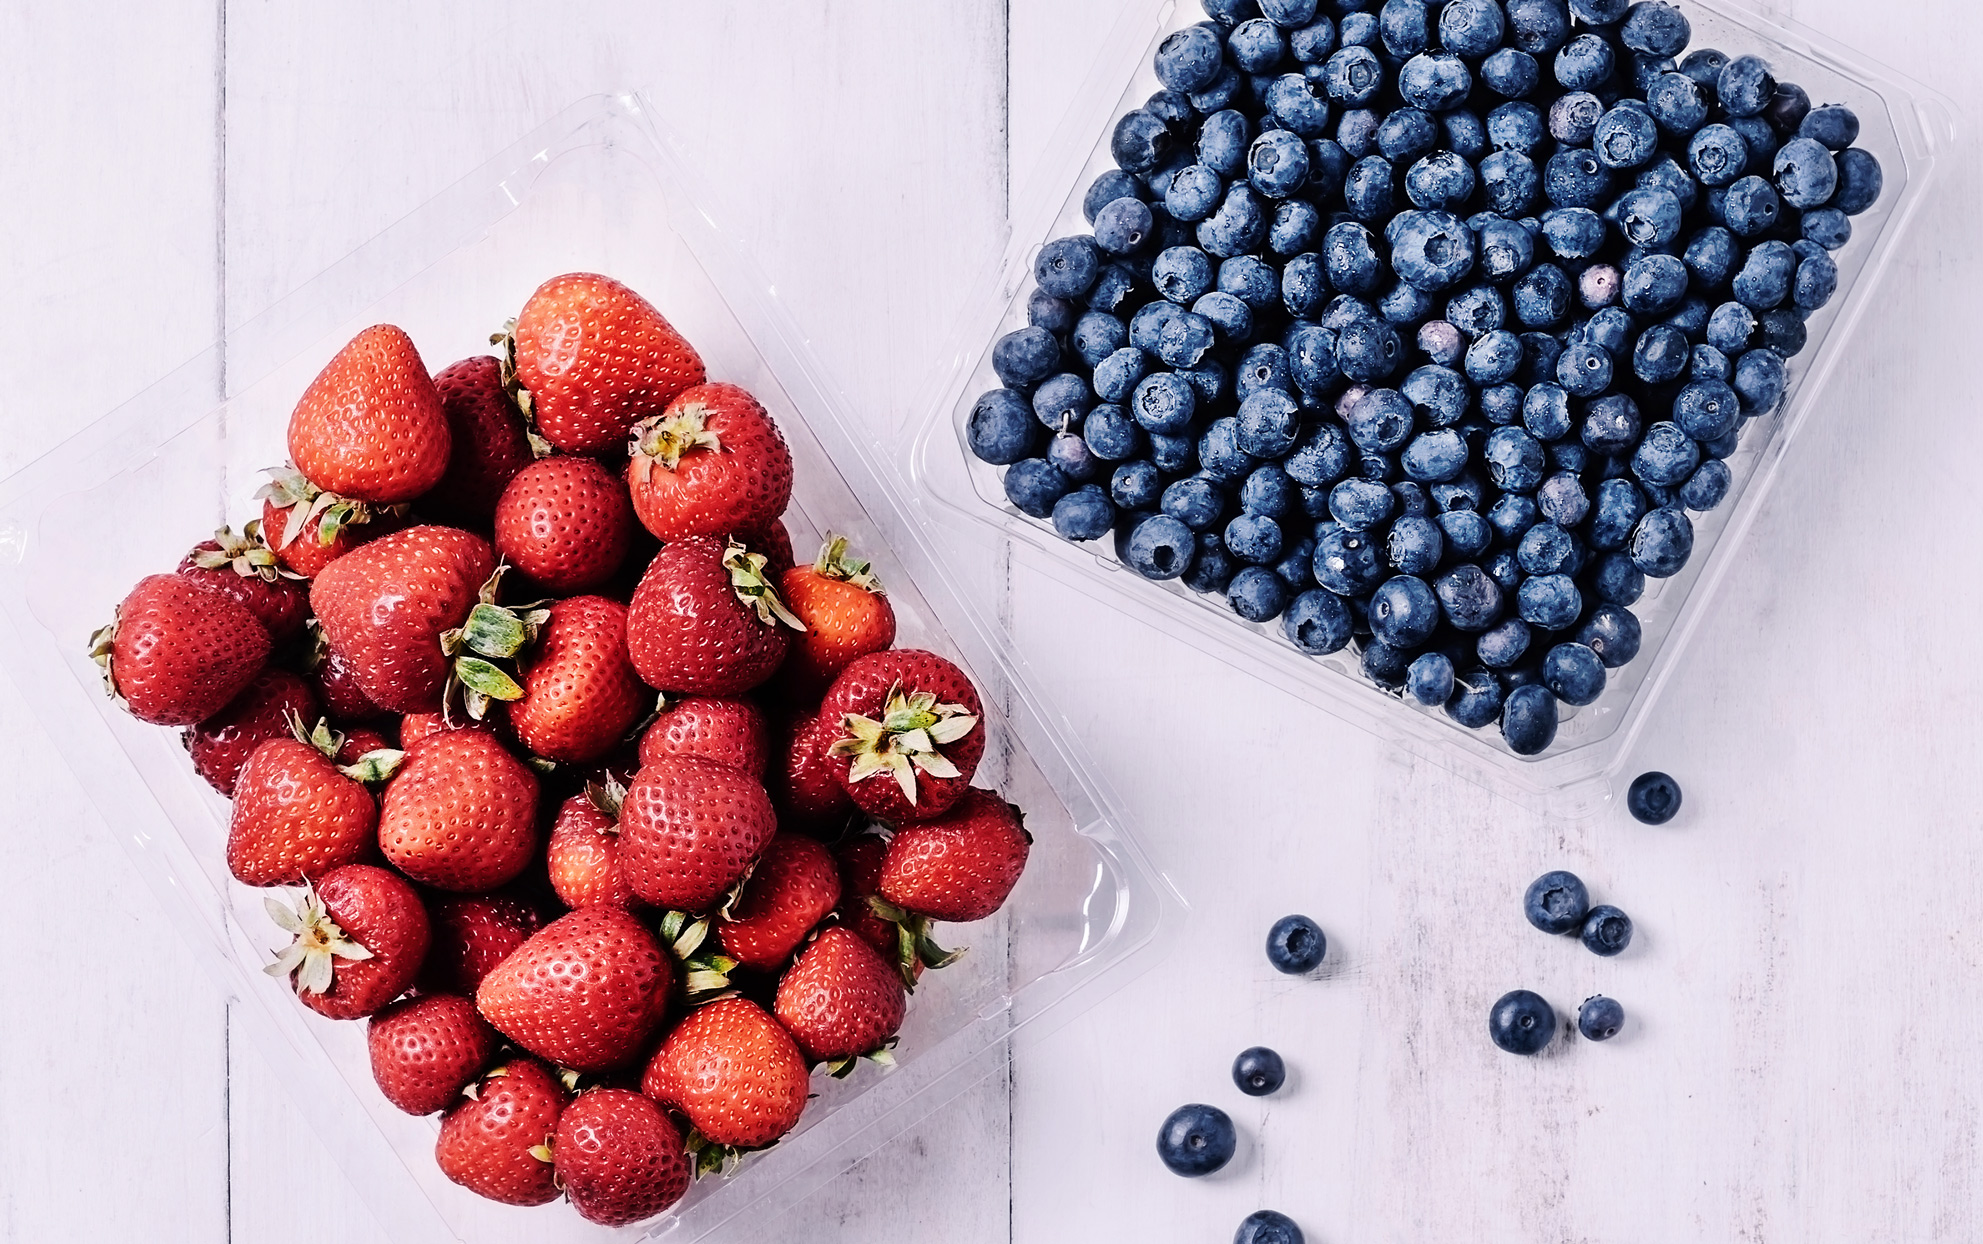 By 2025, Berry Packaging in the United States Will be Recycle-Ready